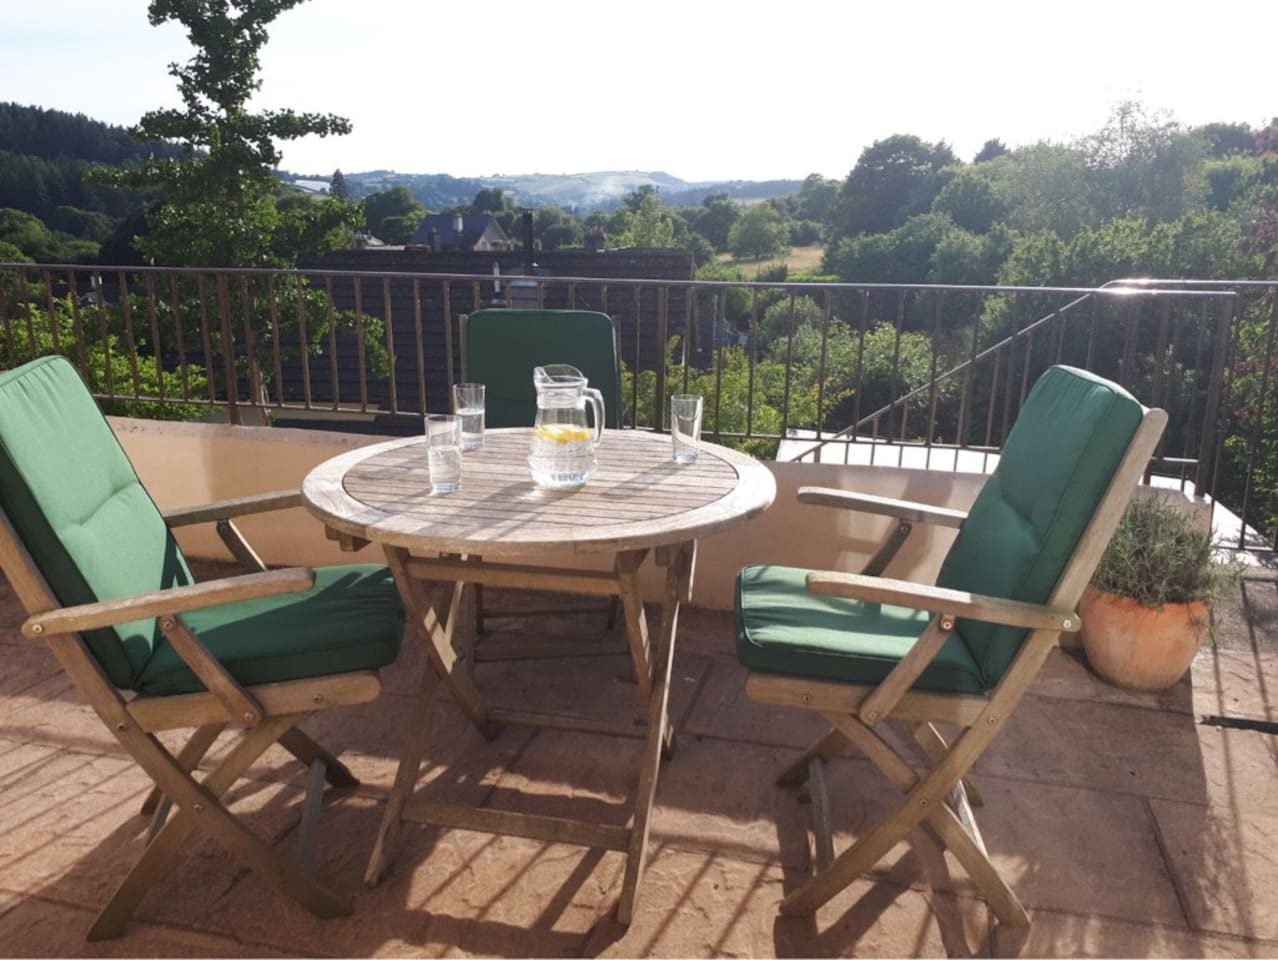 Beautiful view for an alfresco breakfast in tranquil surroundings